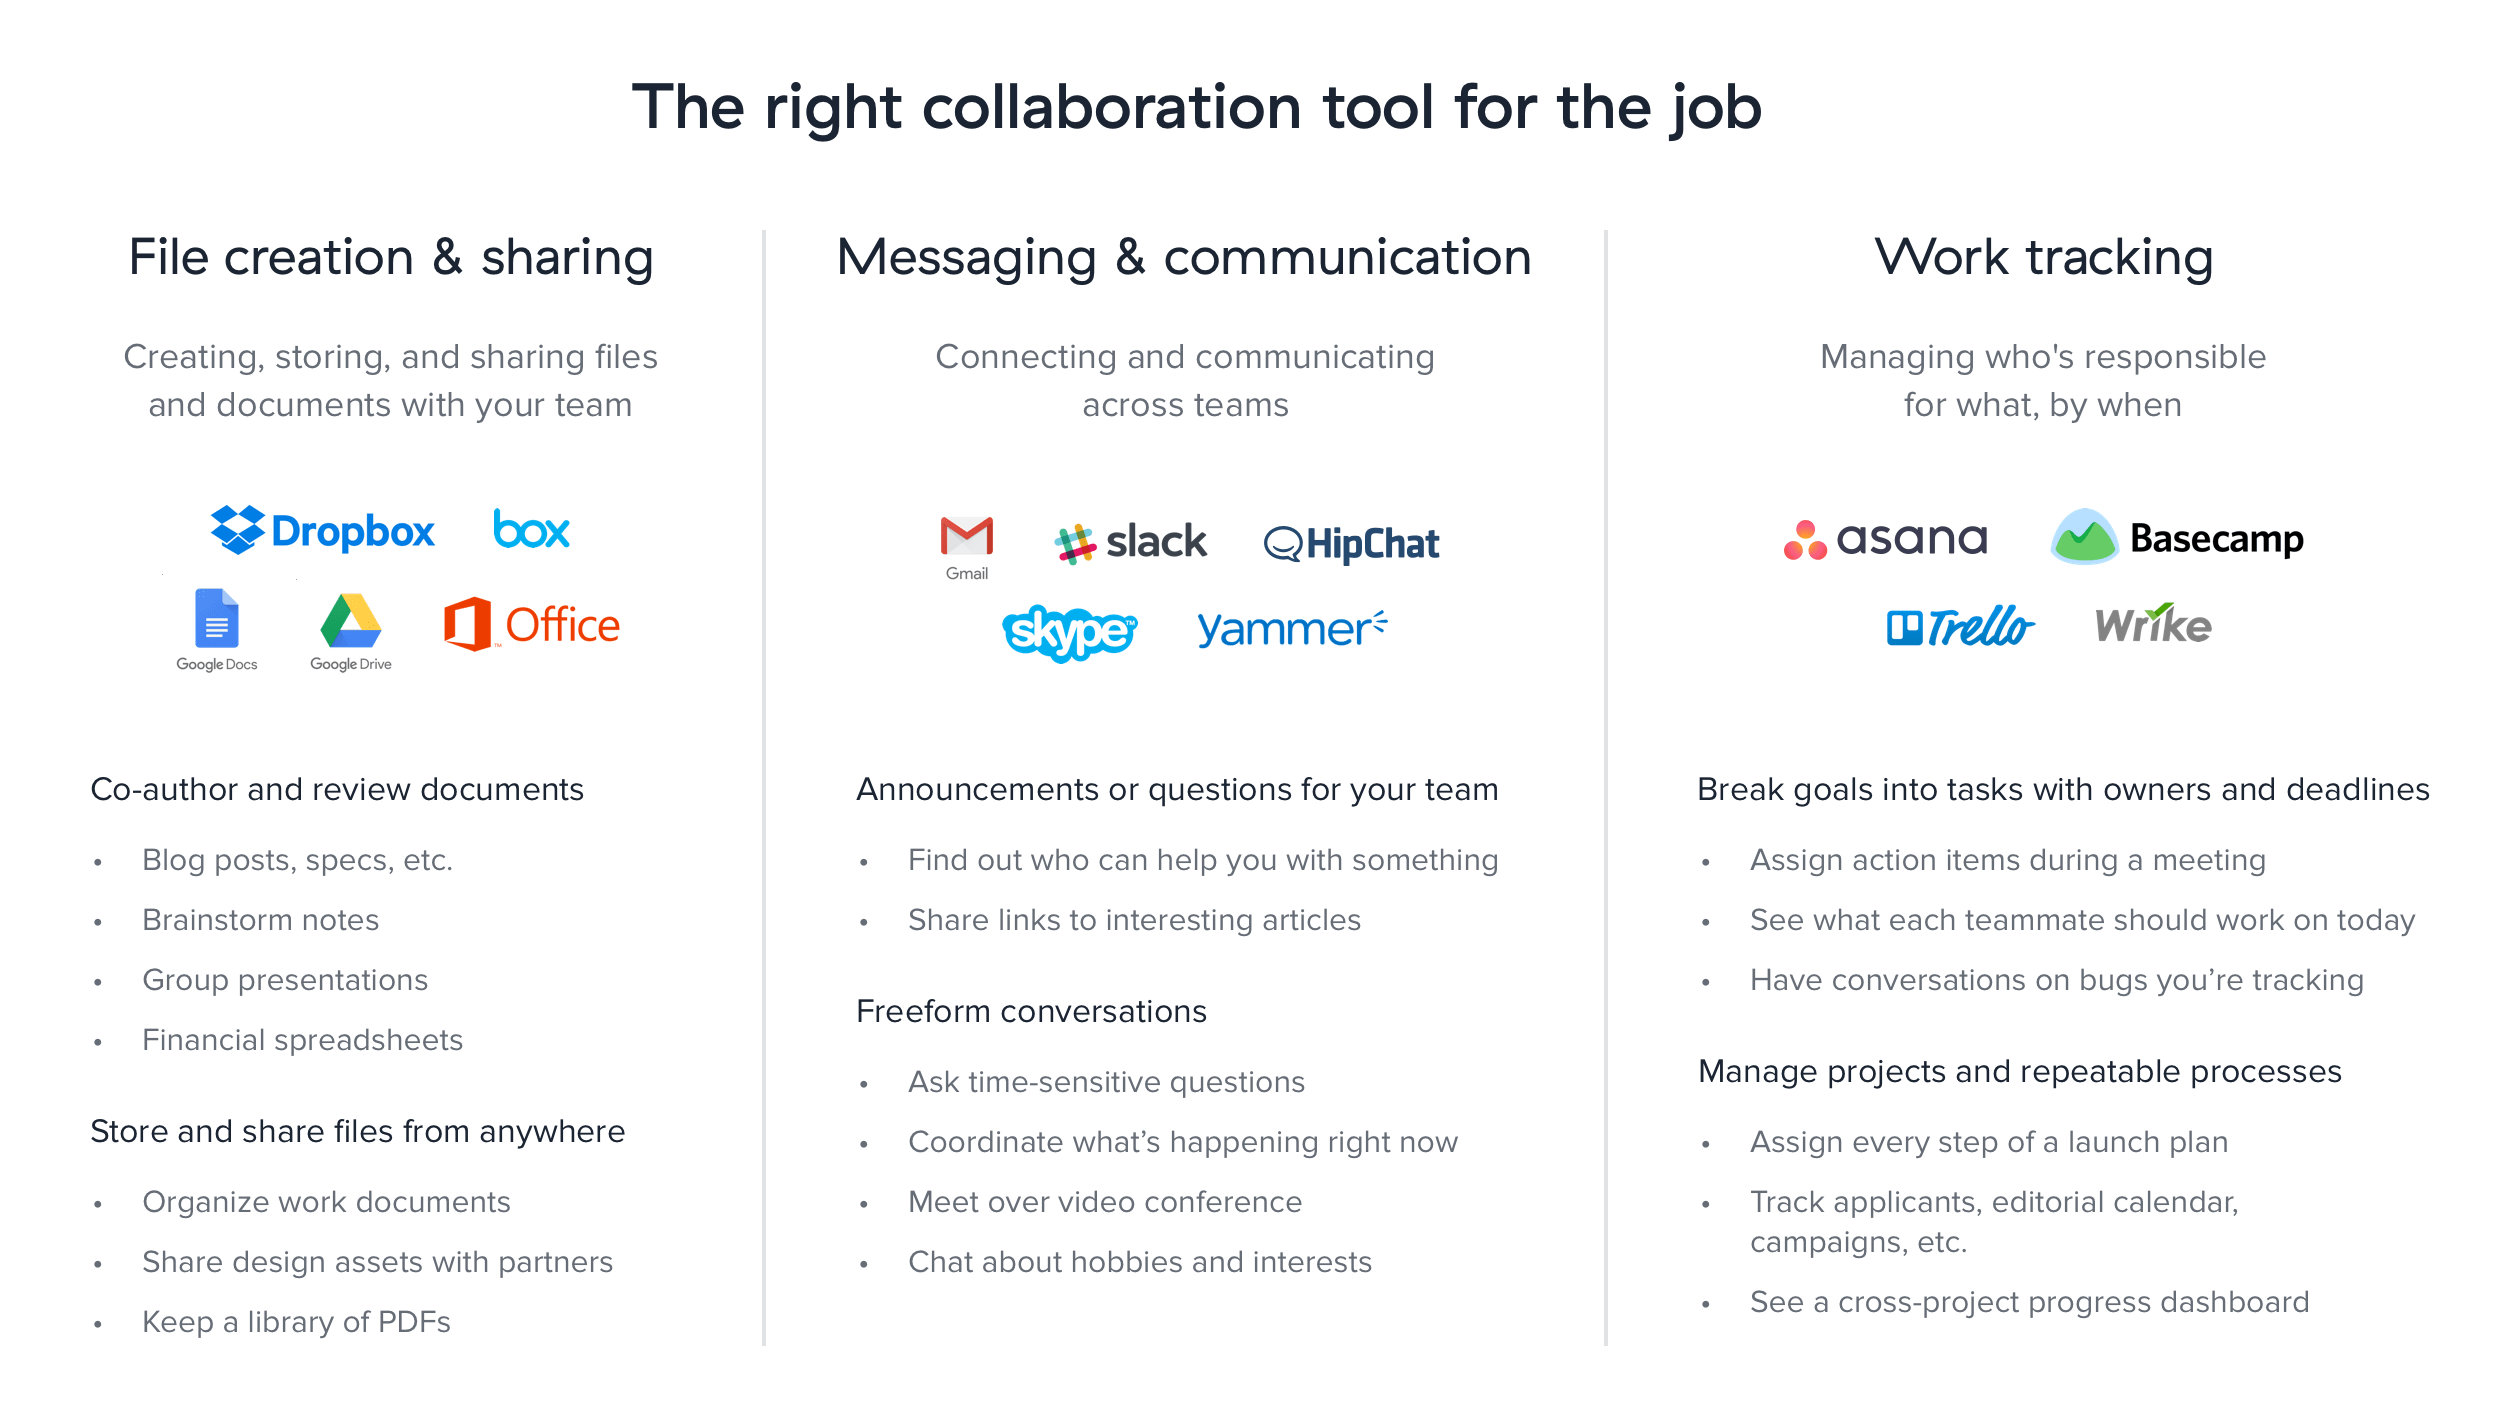 Where Asana fits in with other collaboration tools